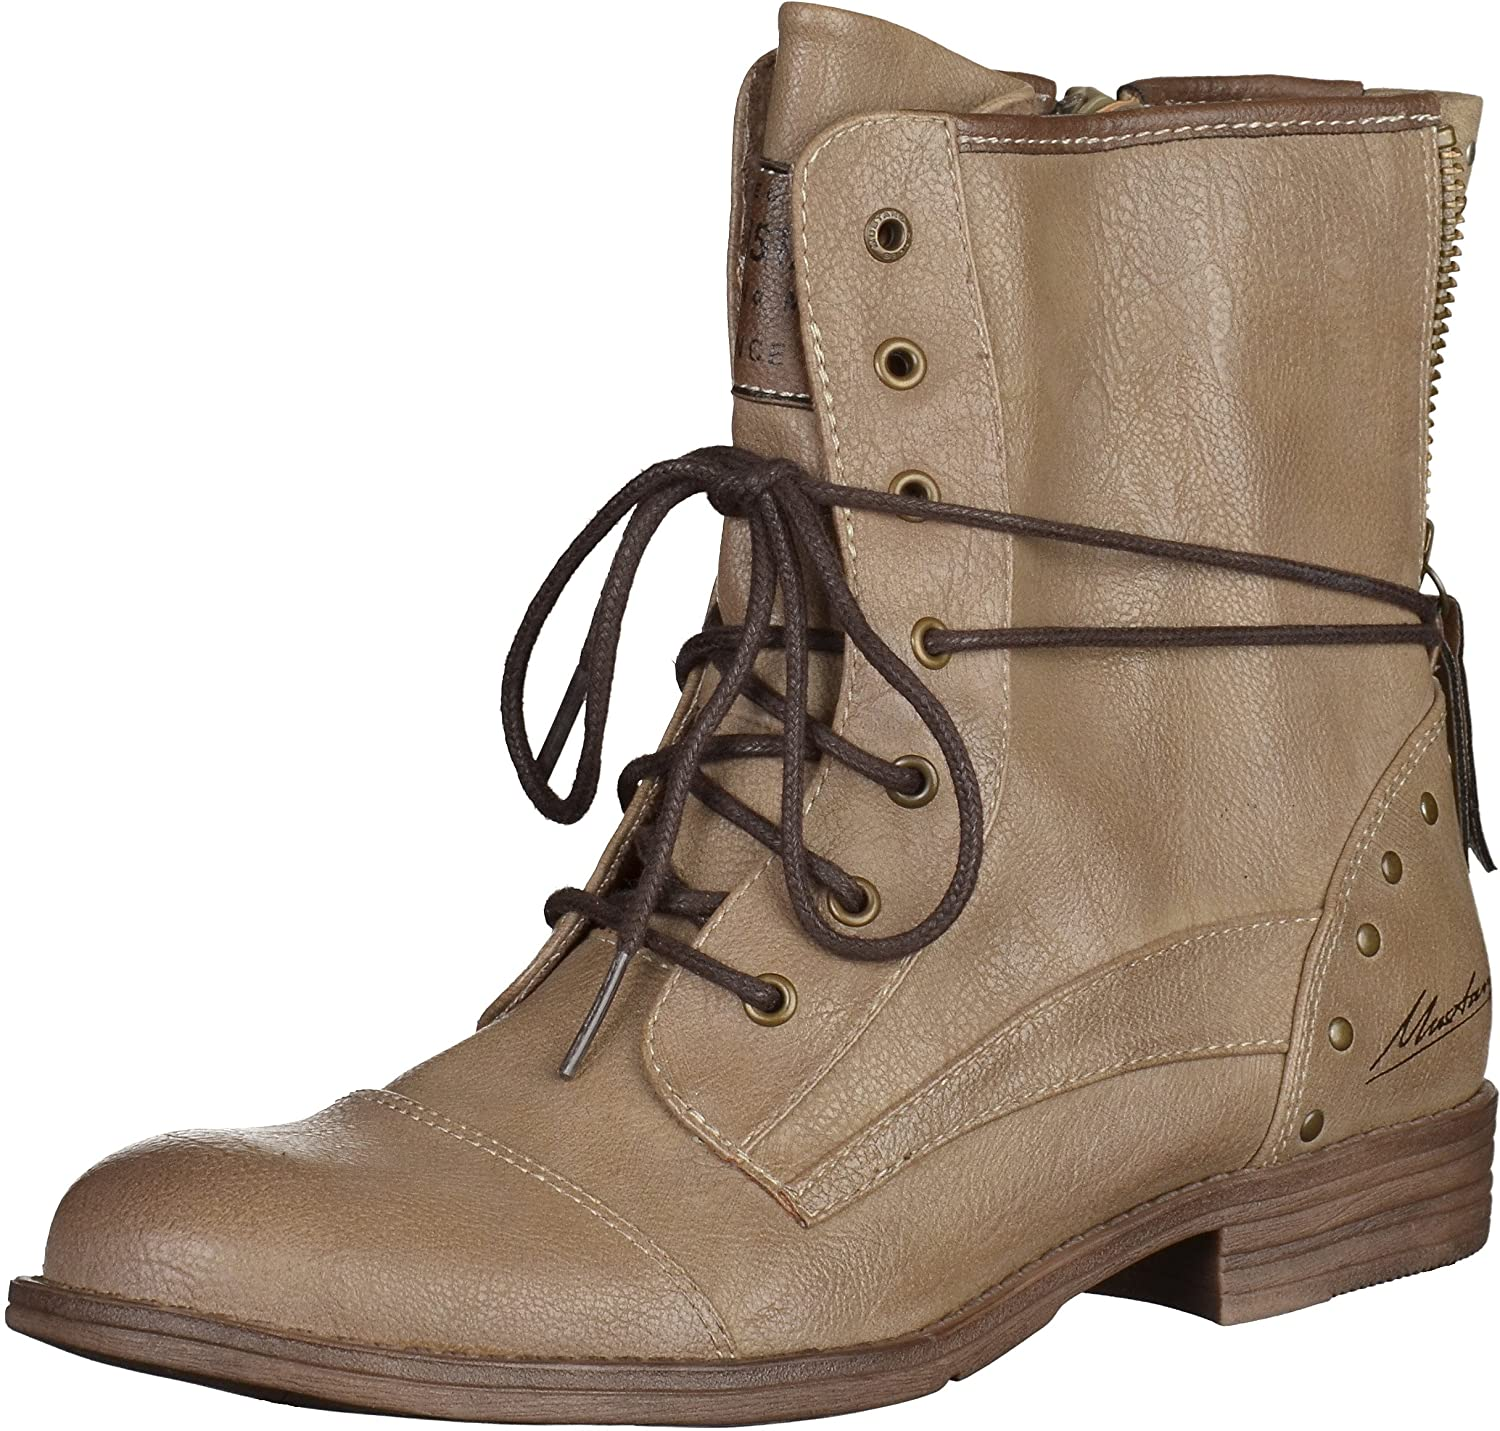 Mustang 1157, Mustang Bottes Beige Classiques 19998 Femme Beige 112c128 - conorscully.space